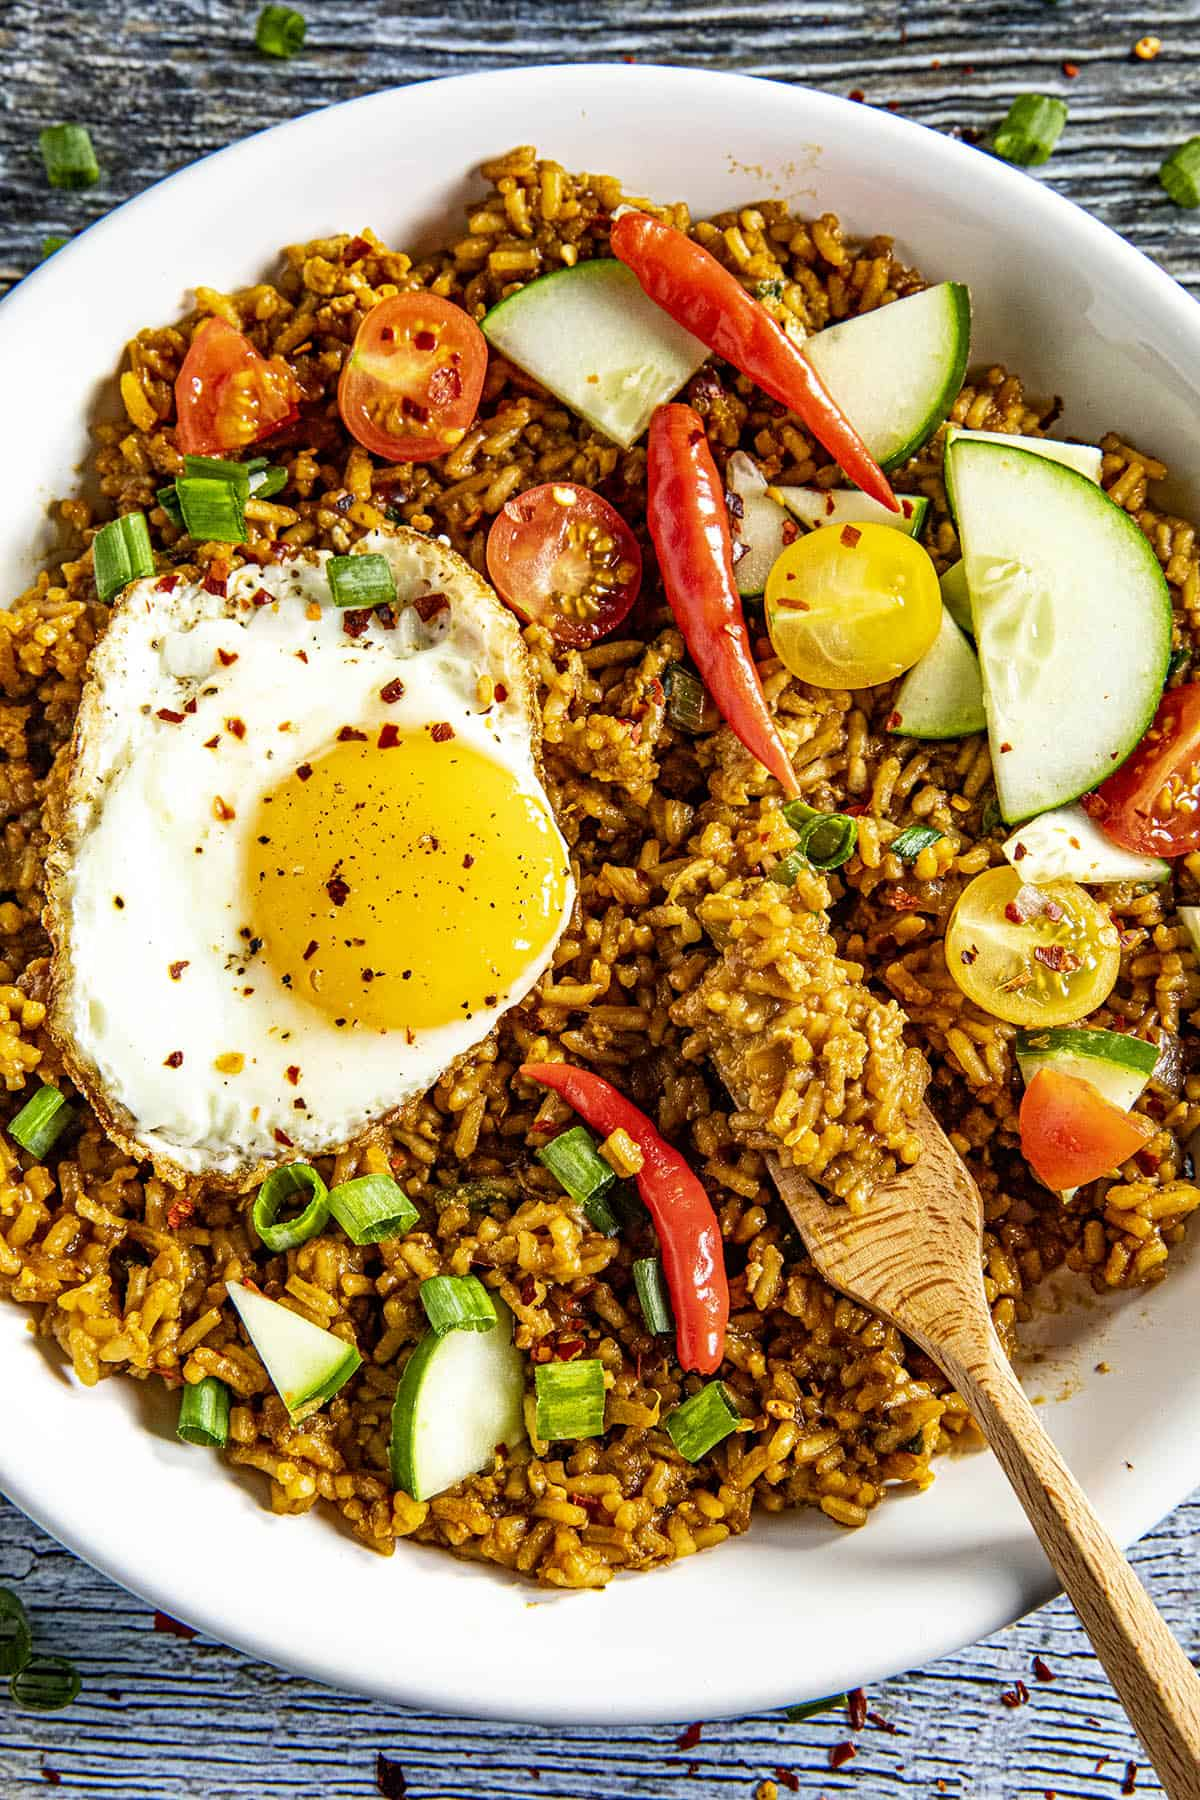 Taking a forkful of Indonesian Fried Rice (Nasi Goreng) from a bowl